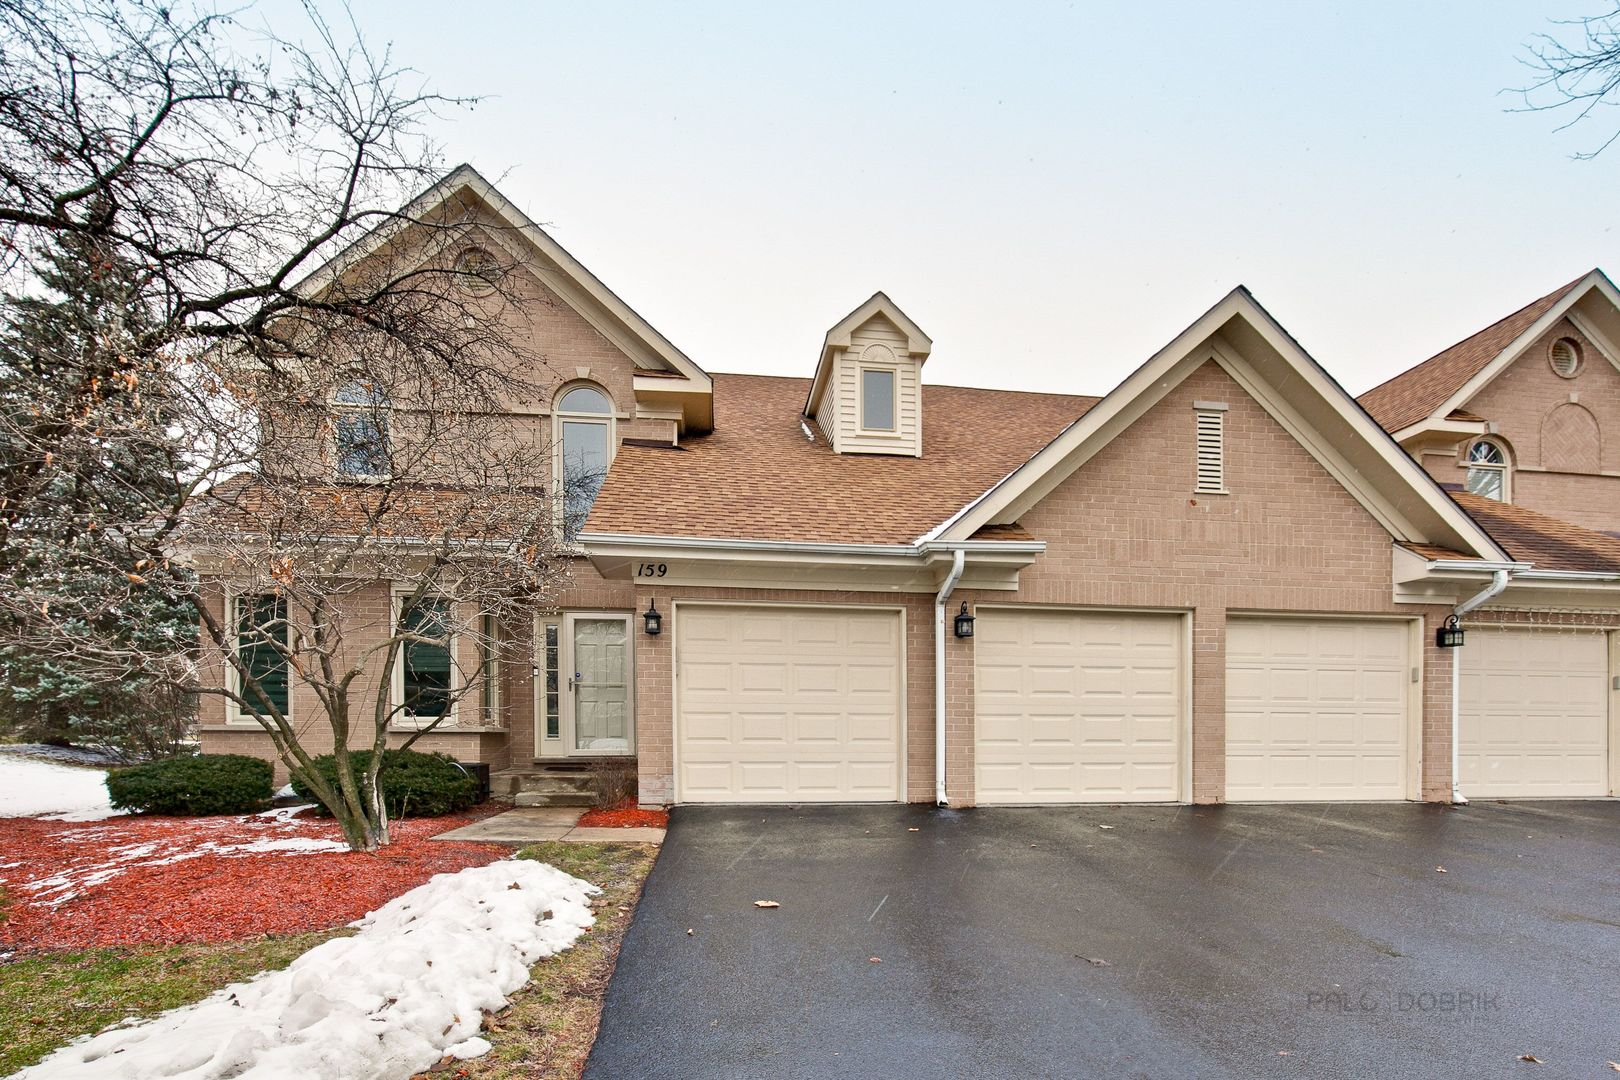 159 Manchester Drive, Buffalo Grove in Lake County, IL 60089 Home for Sale